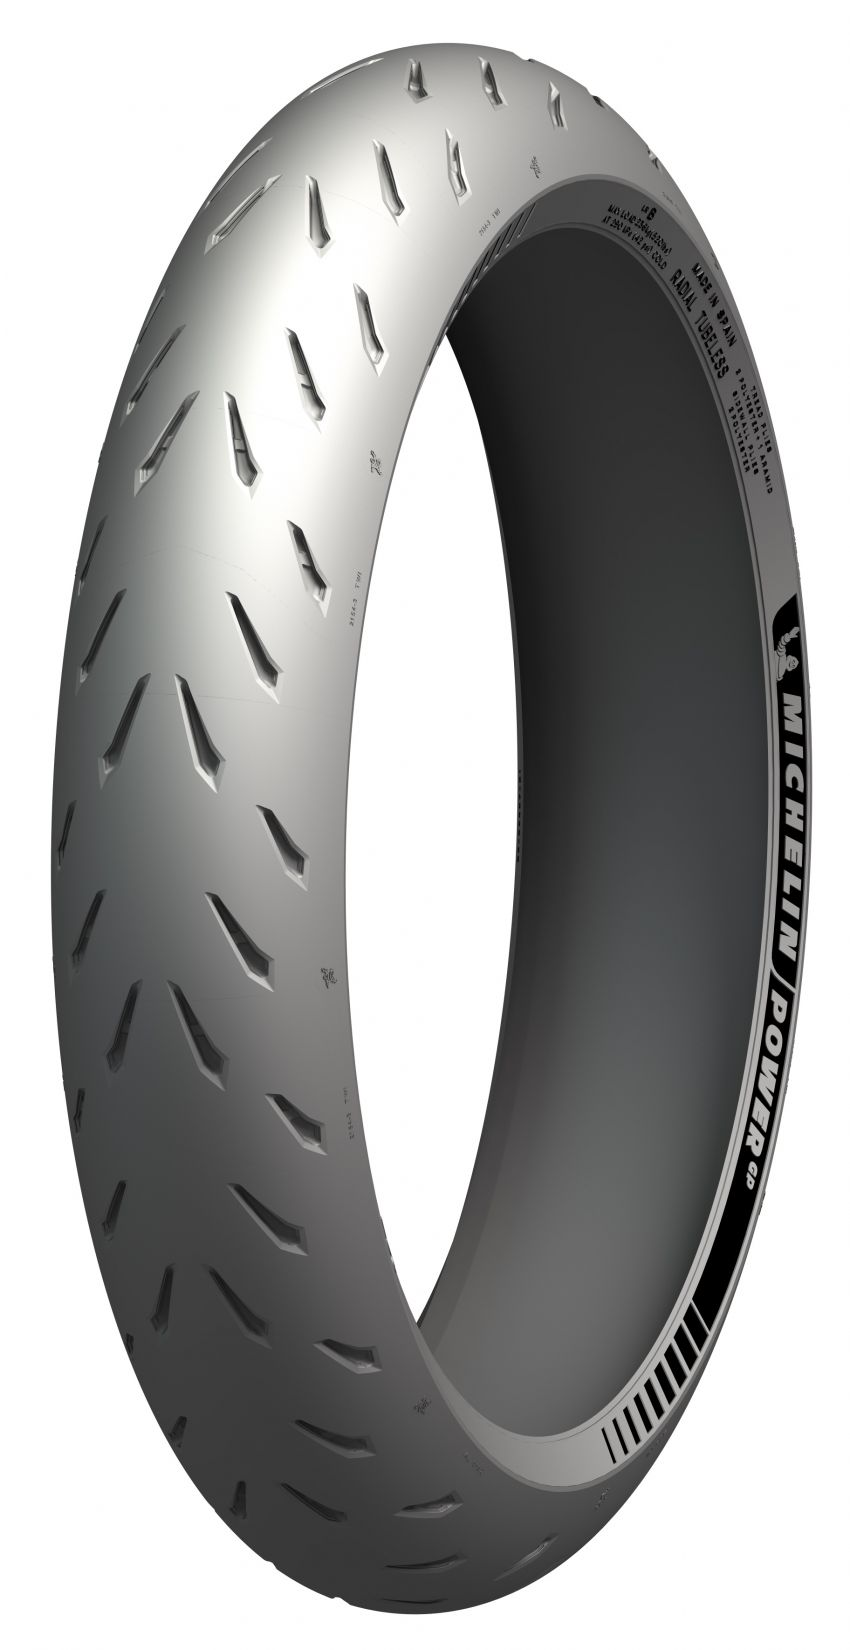 """Michelin Malaysia launches """"Power"""" motorcycle tyre range – pricing from RM423 for front, RM530 for rear Image #1147124"""